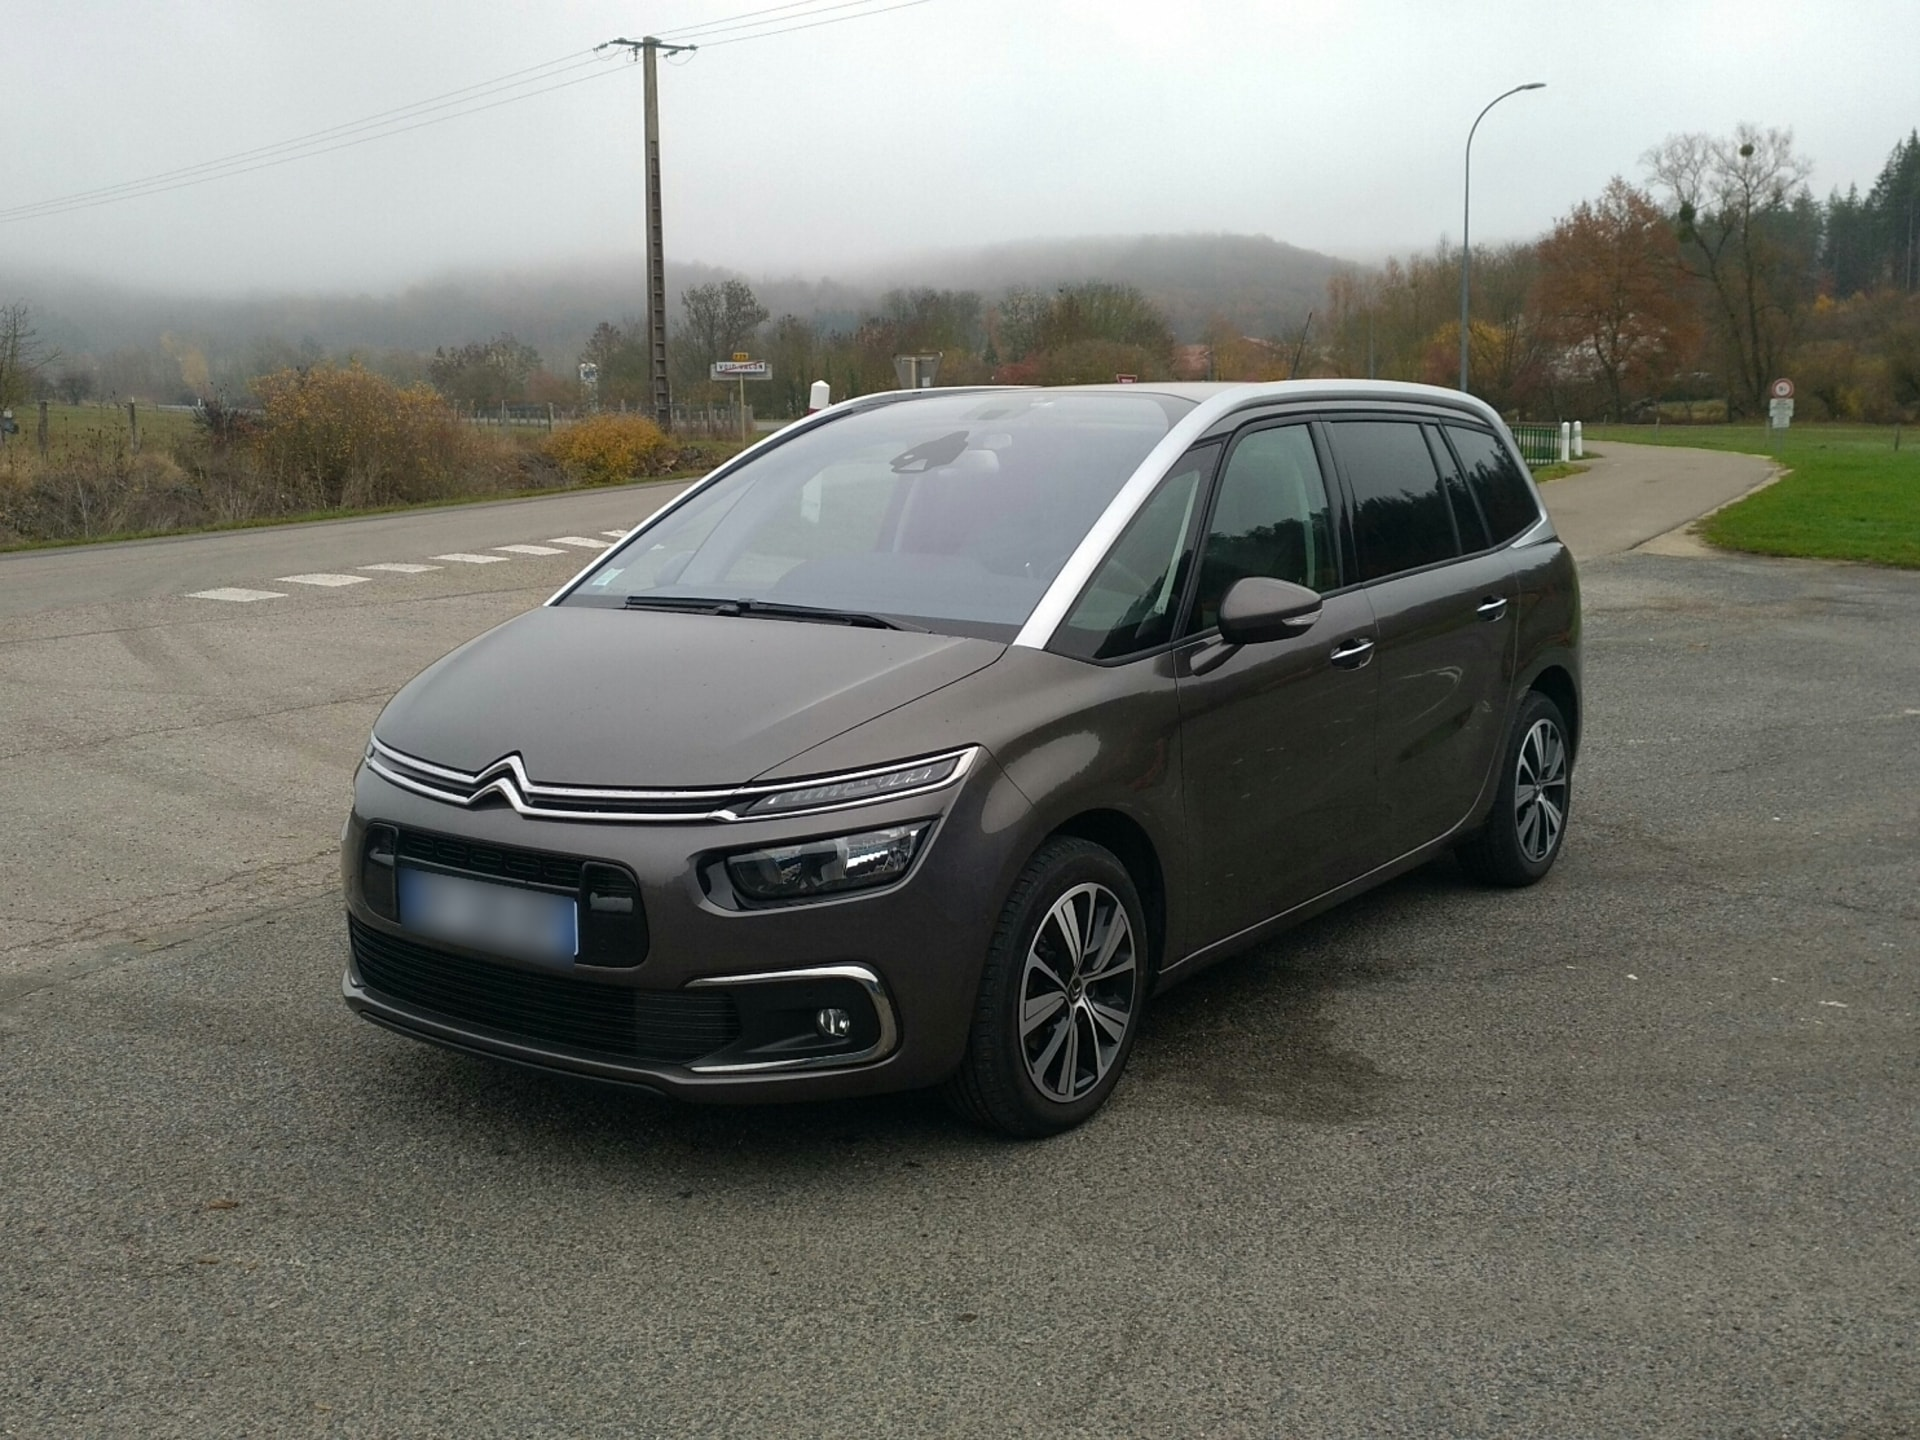 CITROEN C4 GRAND PICASSO 1.6 BLUEHDI 120 SHINE EAT BVA START-STOP - Carverntura